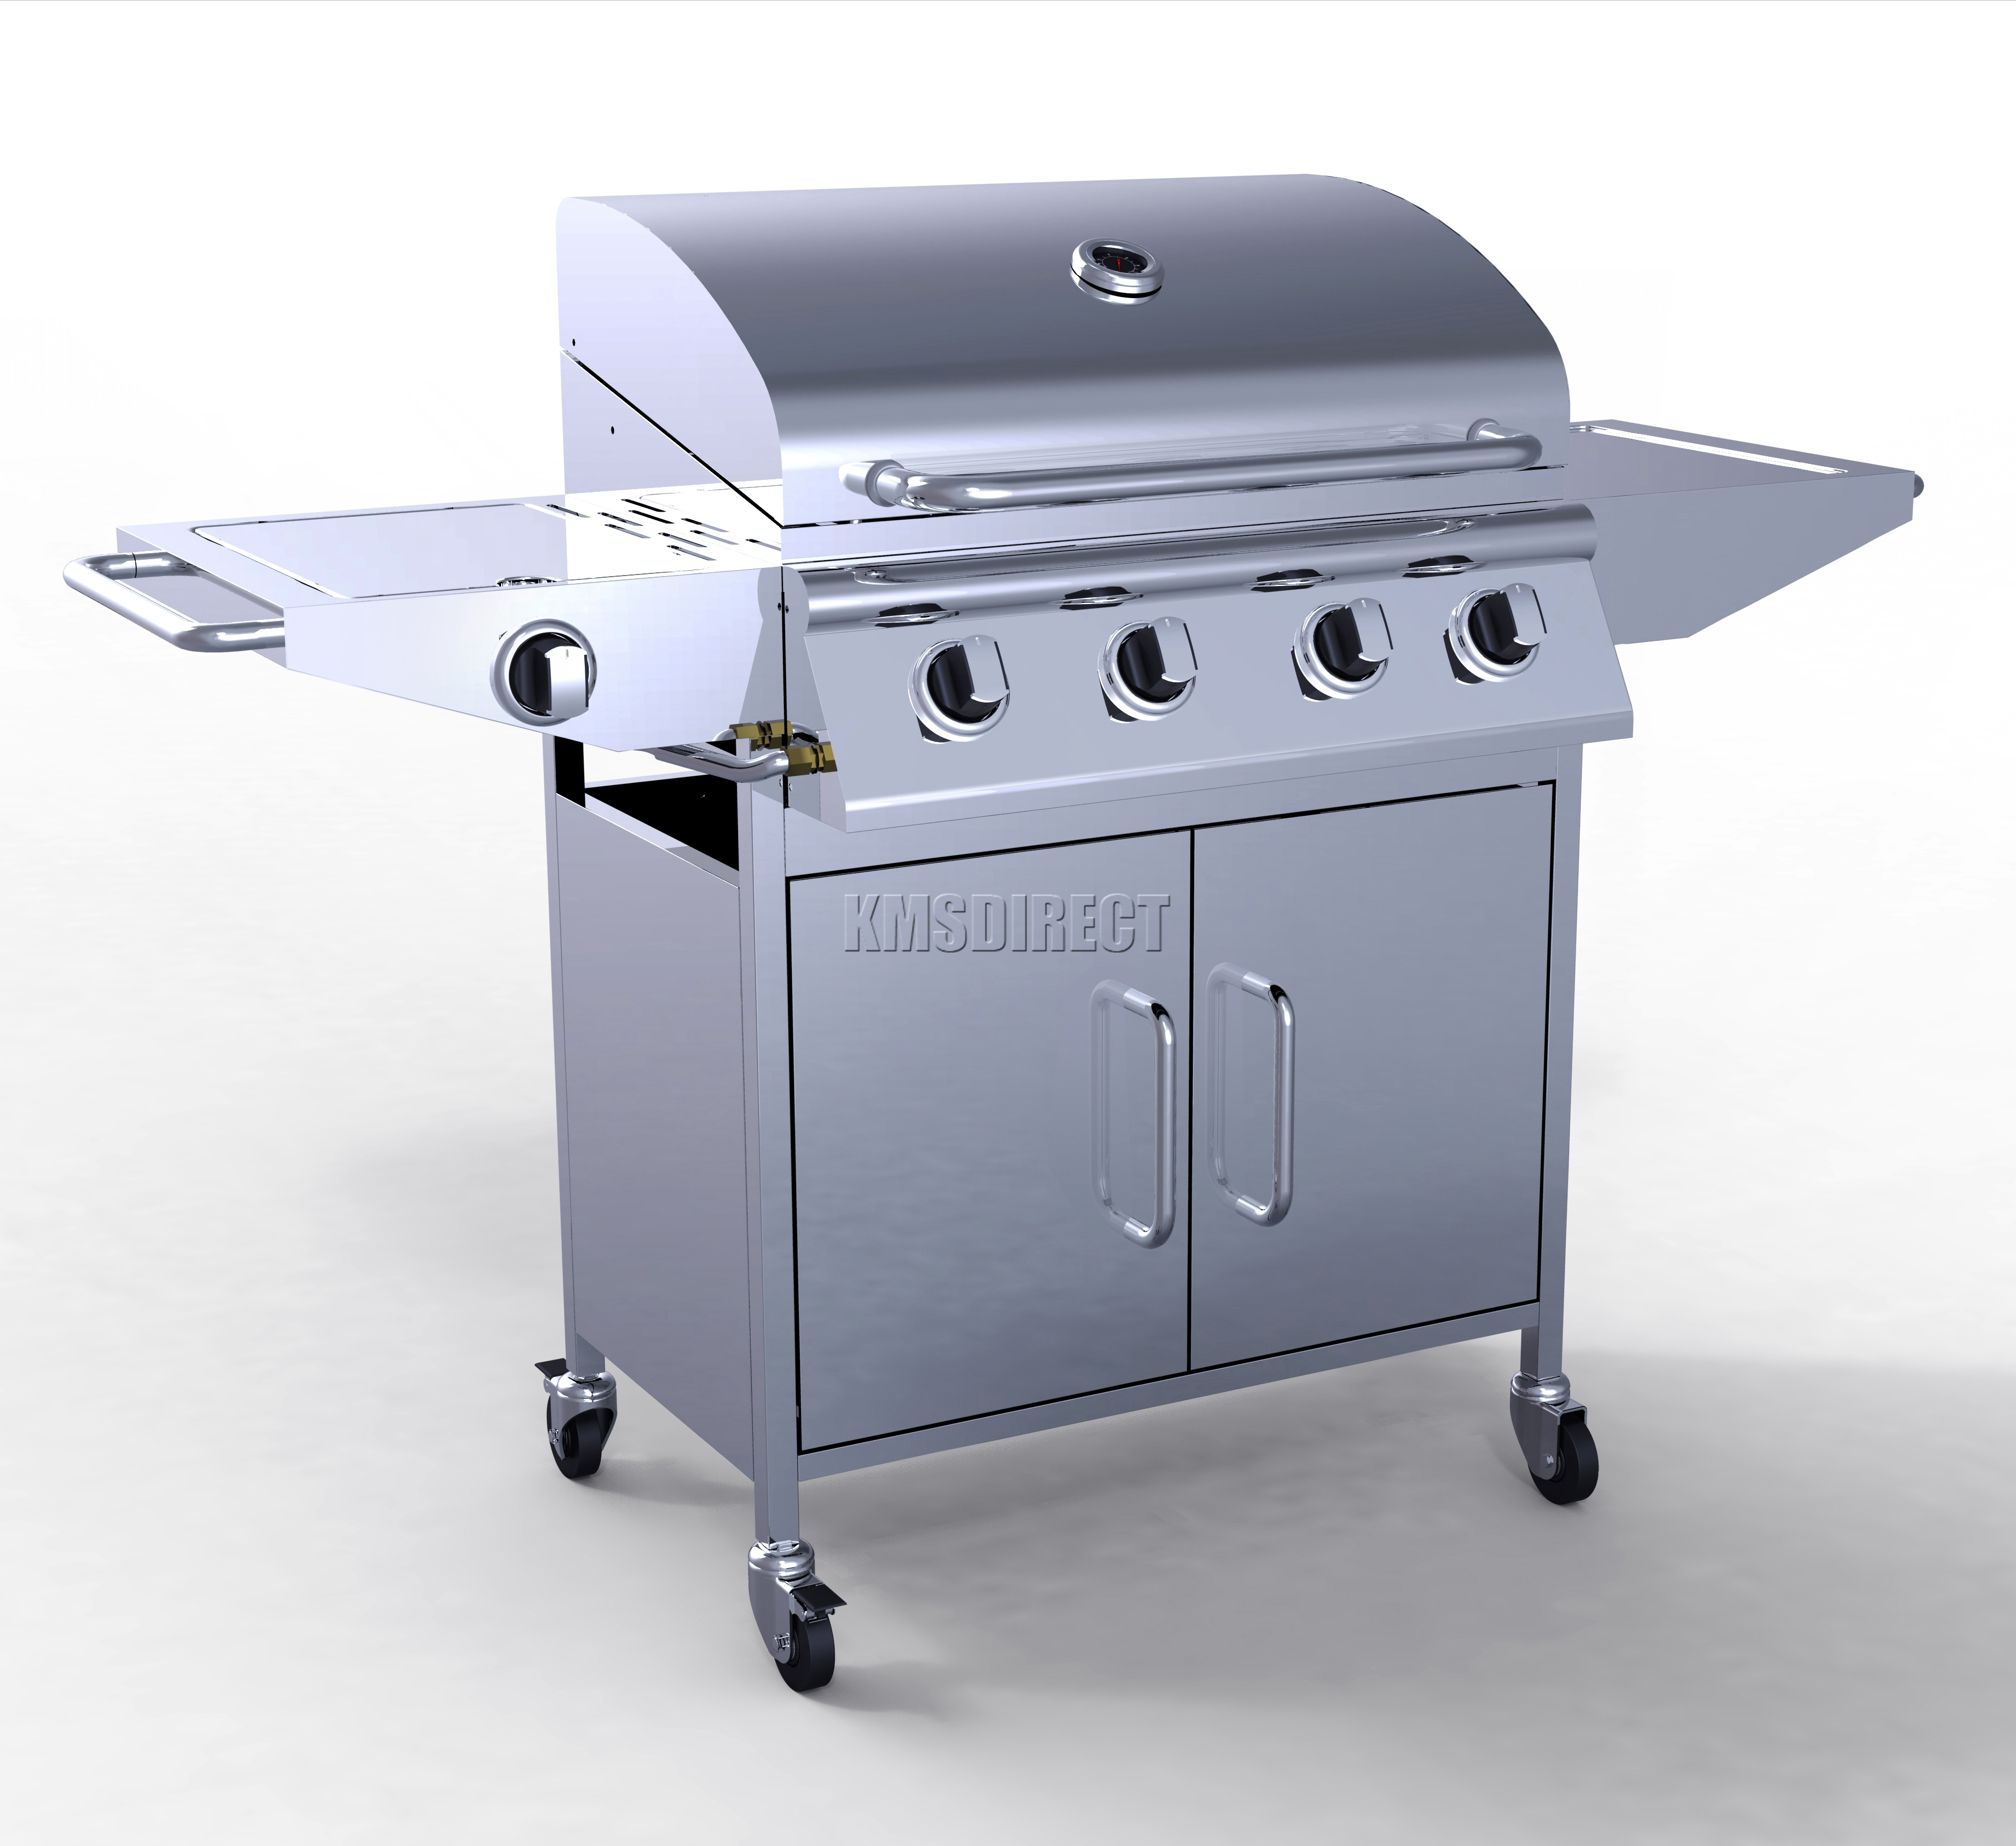 foxhunter 4 burner bbq gas grill stainless steel barbecue 1 side outdoor new. Black Bedroom Furniture Sets. Home Design Ideas